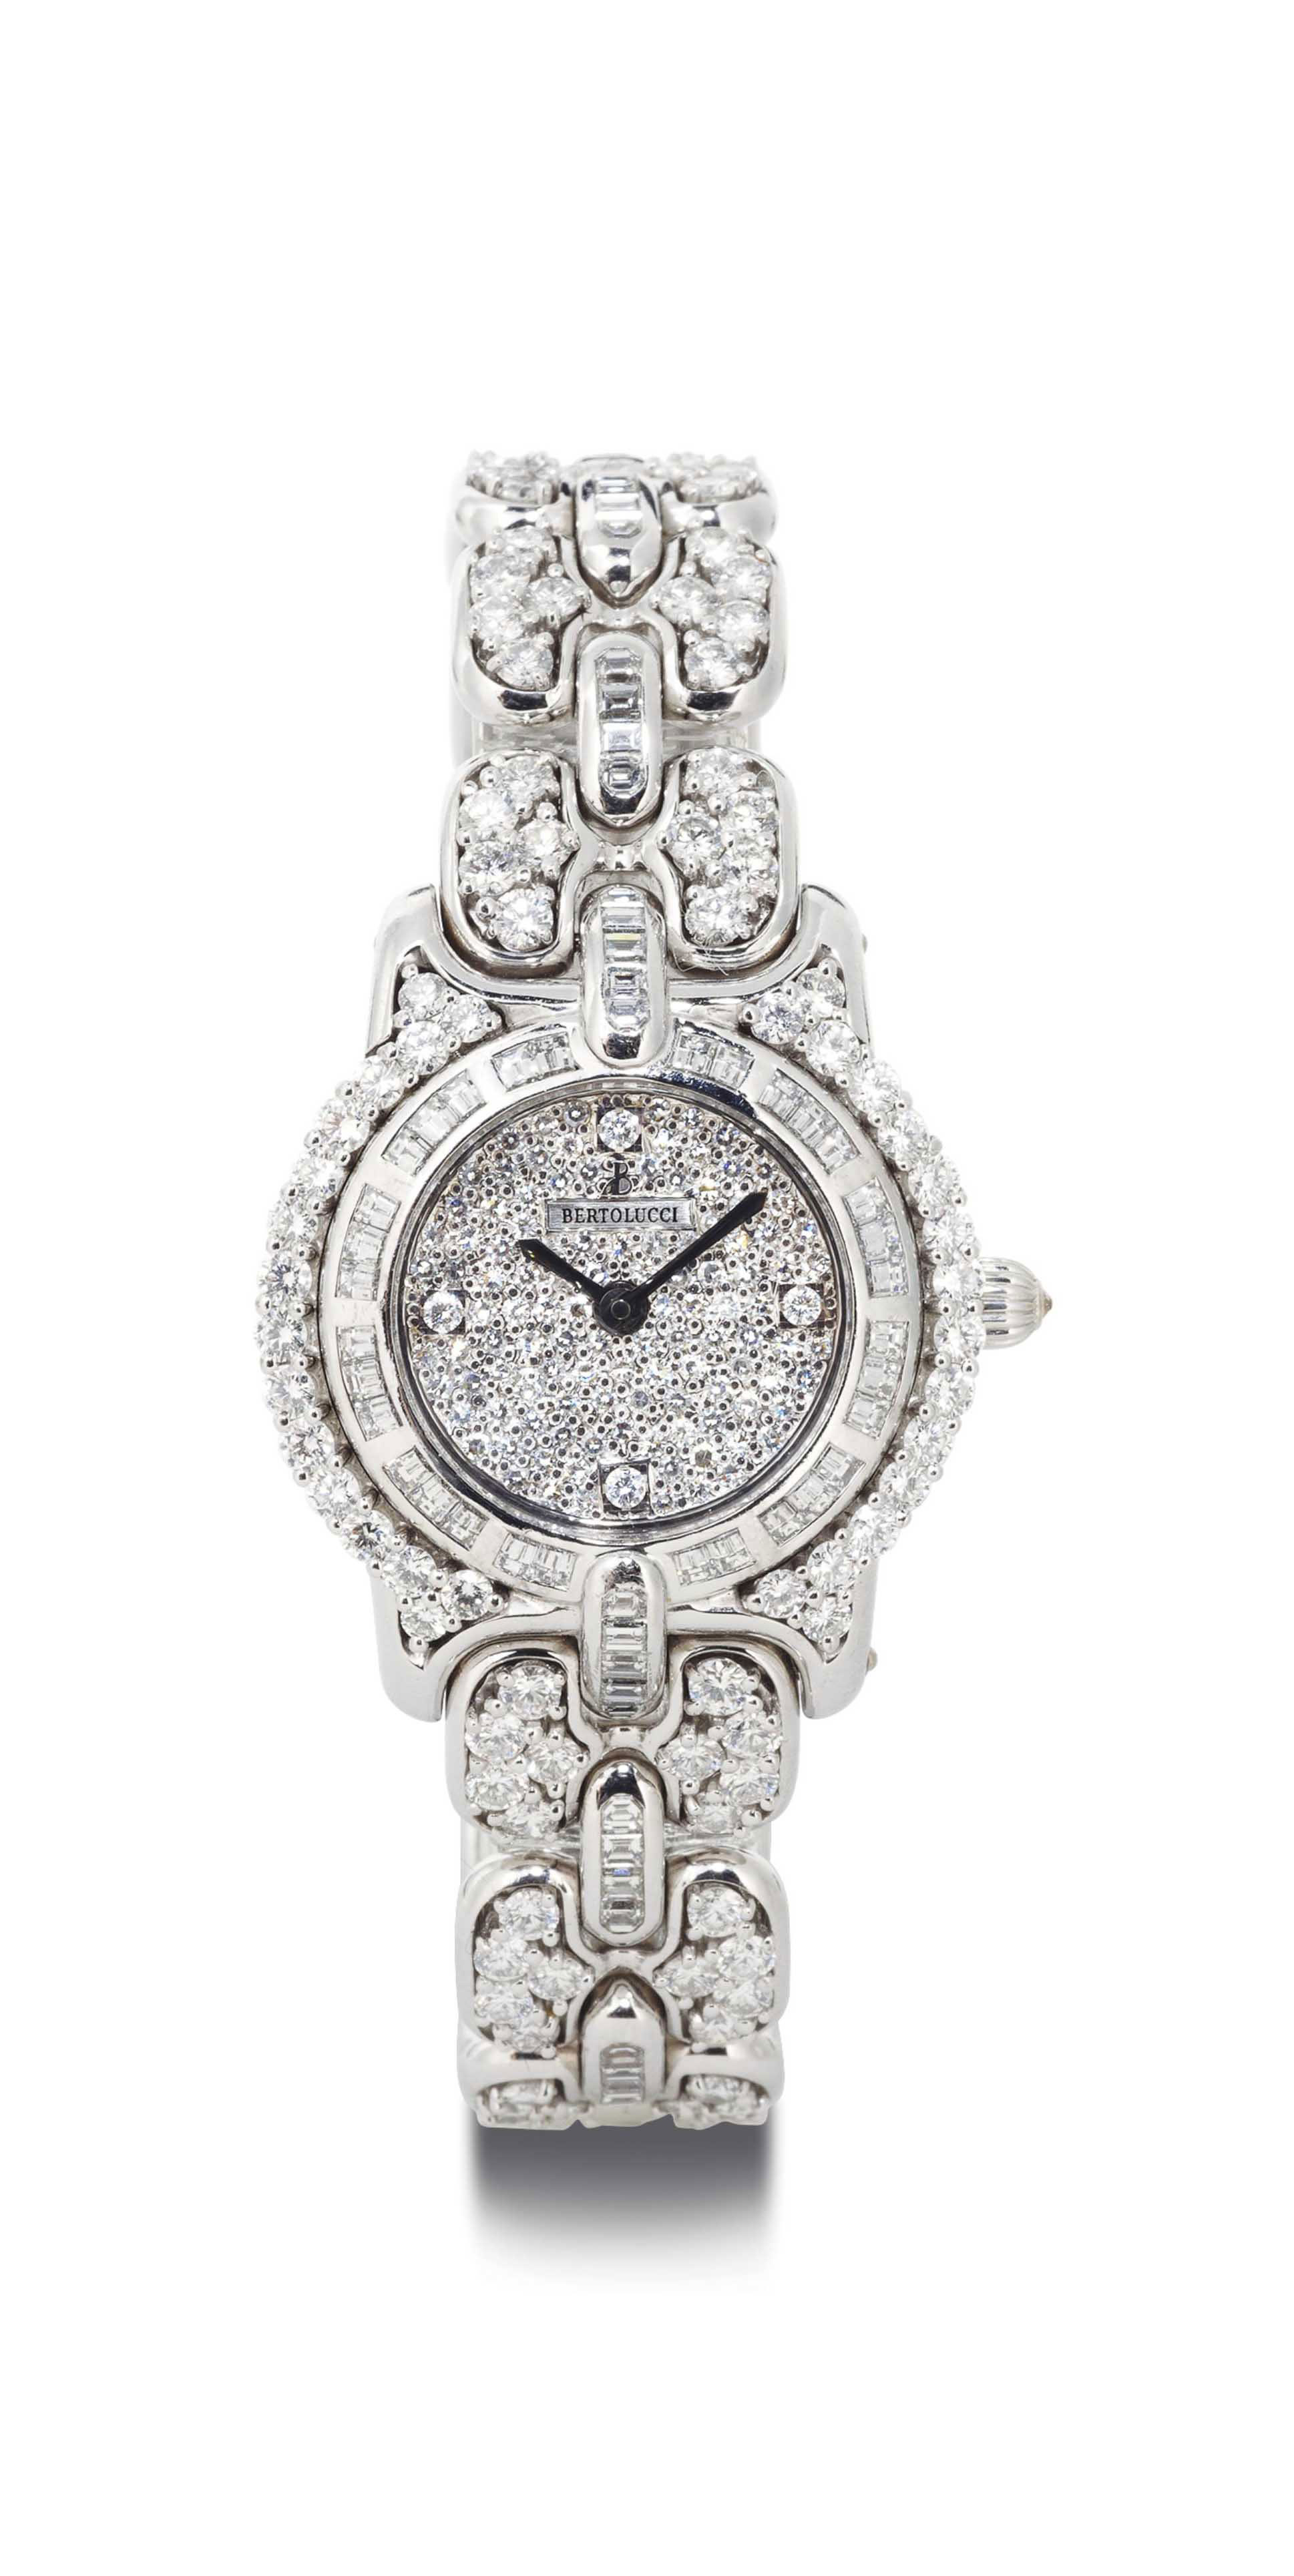 BERTOLUCCI. A LADY'S FINE 18K WHITE GOLD AND DIAMOND WRISTWATCH WITH BRACELET